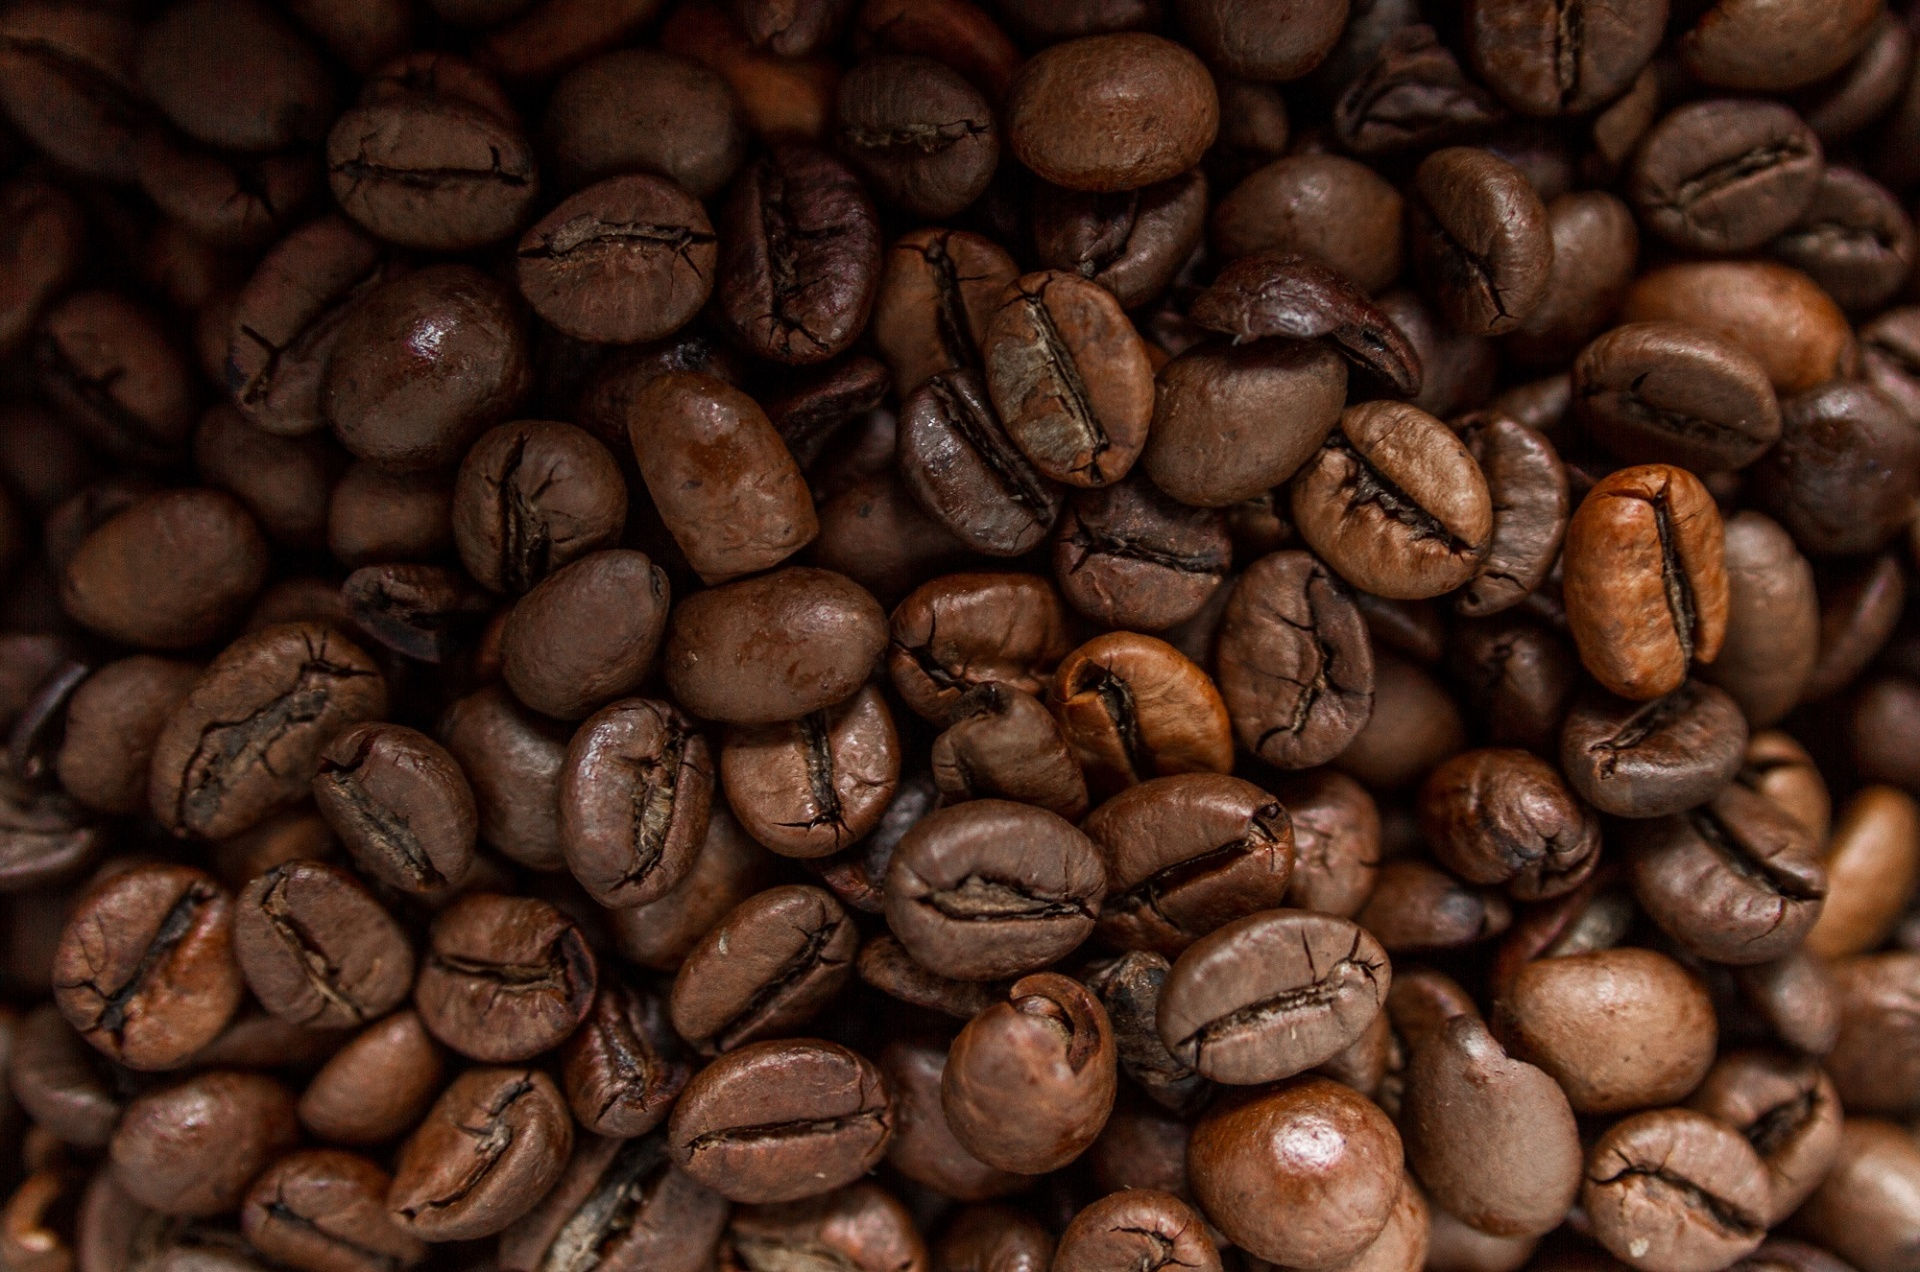 Roasted Coffee Beans Free Stock Photo - Public Domain Pictures